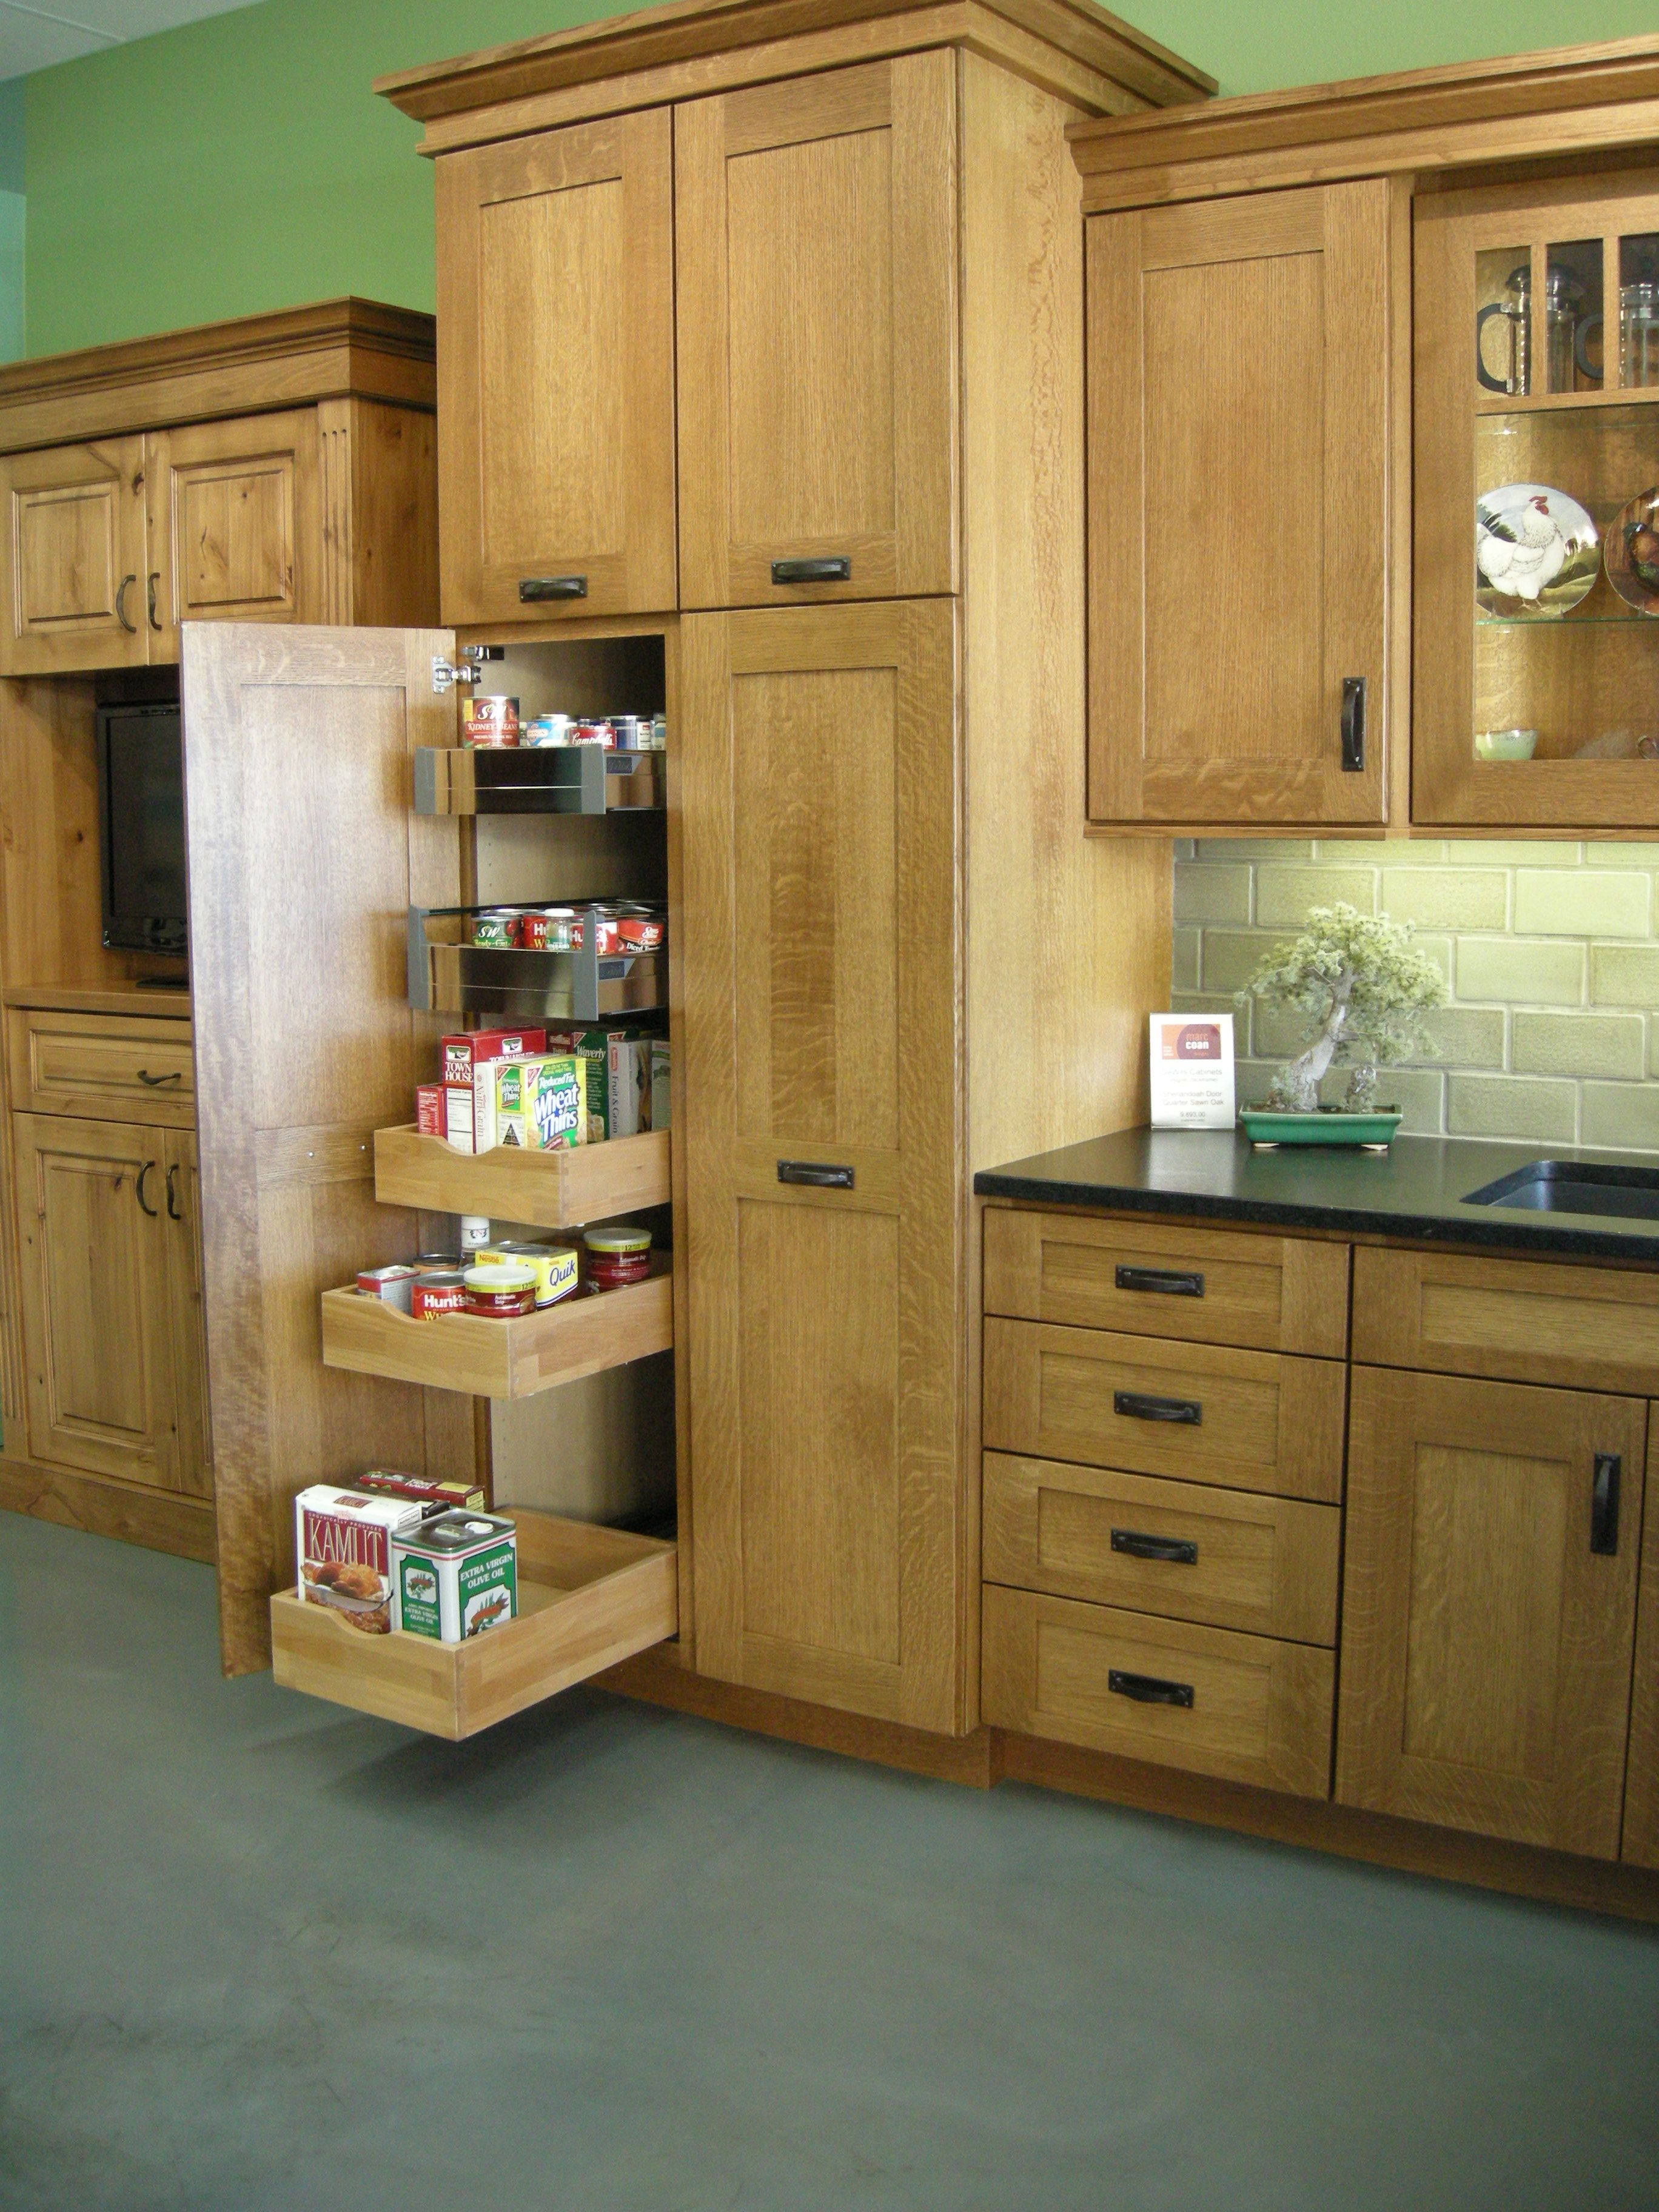 DeWils - Pantry Cabinet with rollout storage | Marc Coan Designs ...